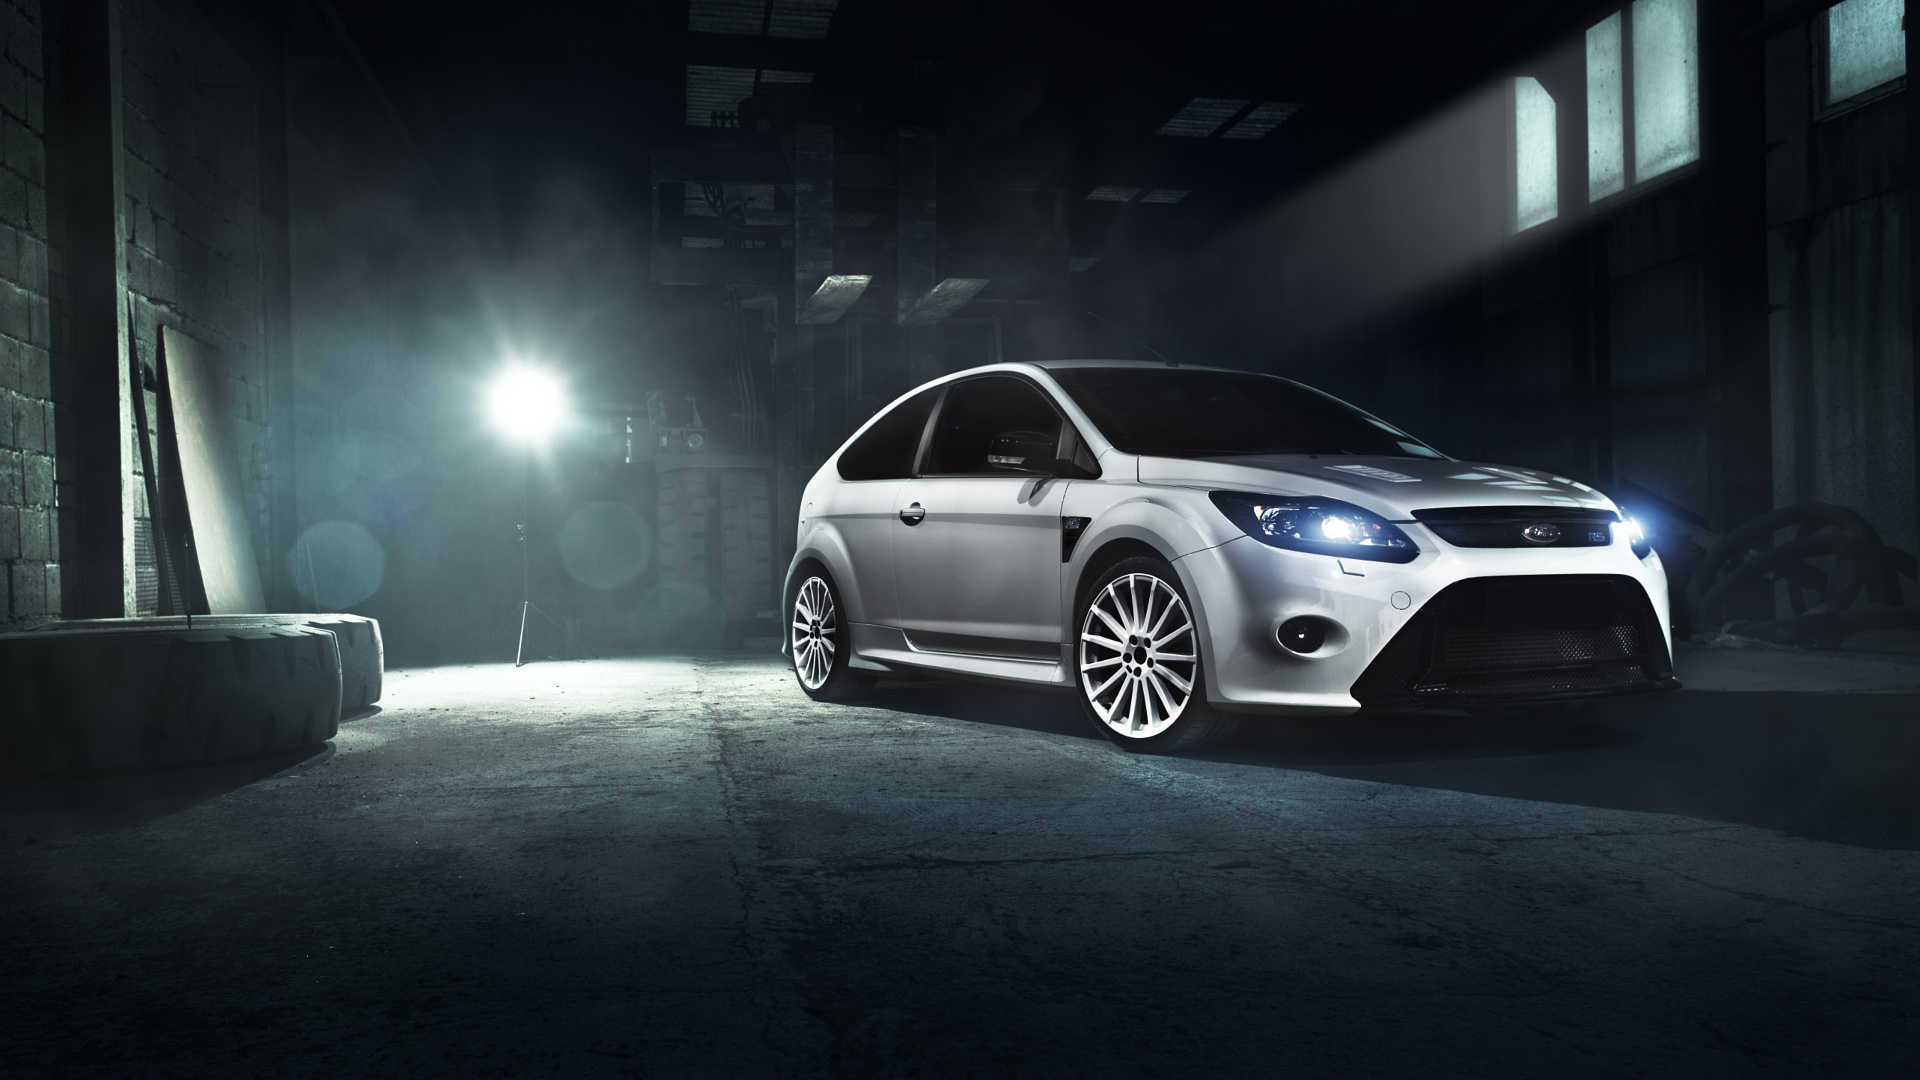 Ford Focus Rs White Wallpaper Hd Car Wallpapers